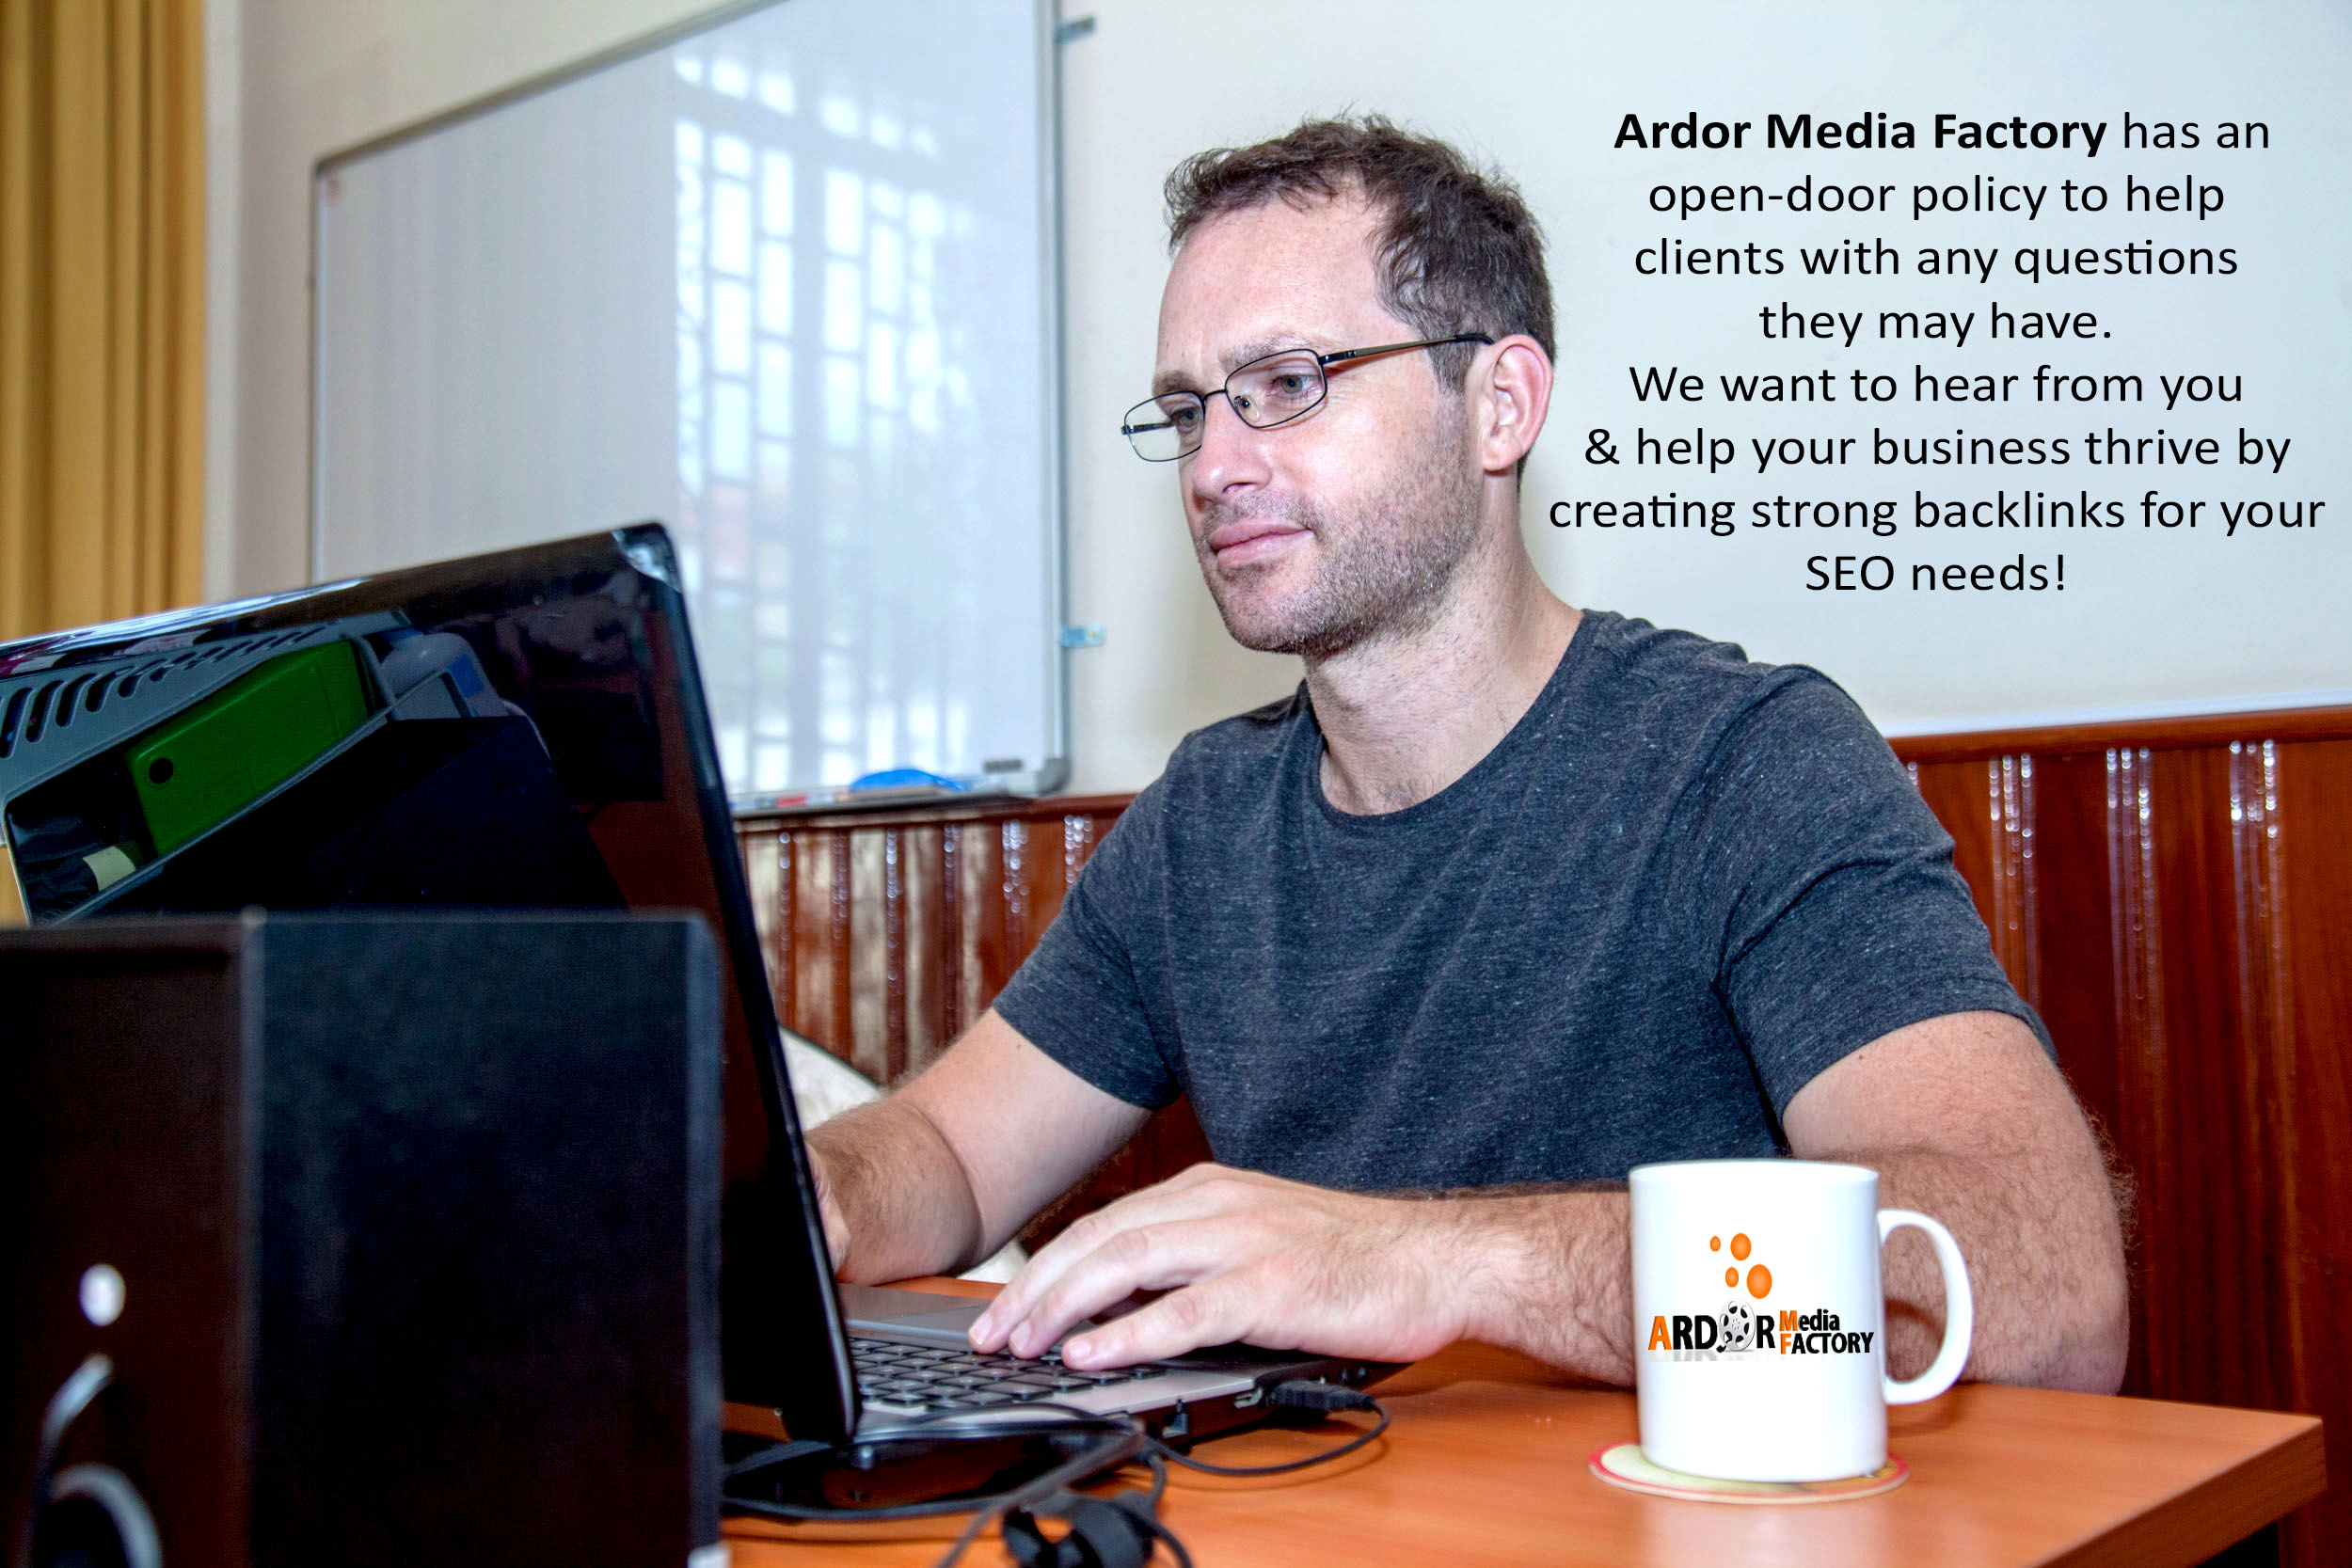 Kris Reid, Coolest Guy in SEO, creating strong backlinks for your SEO needs.